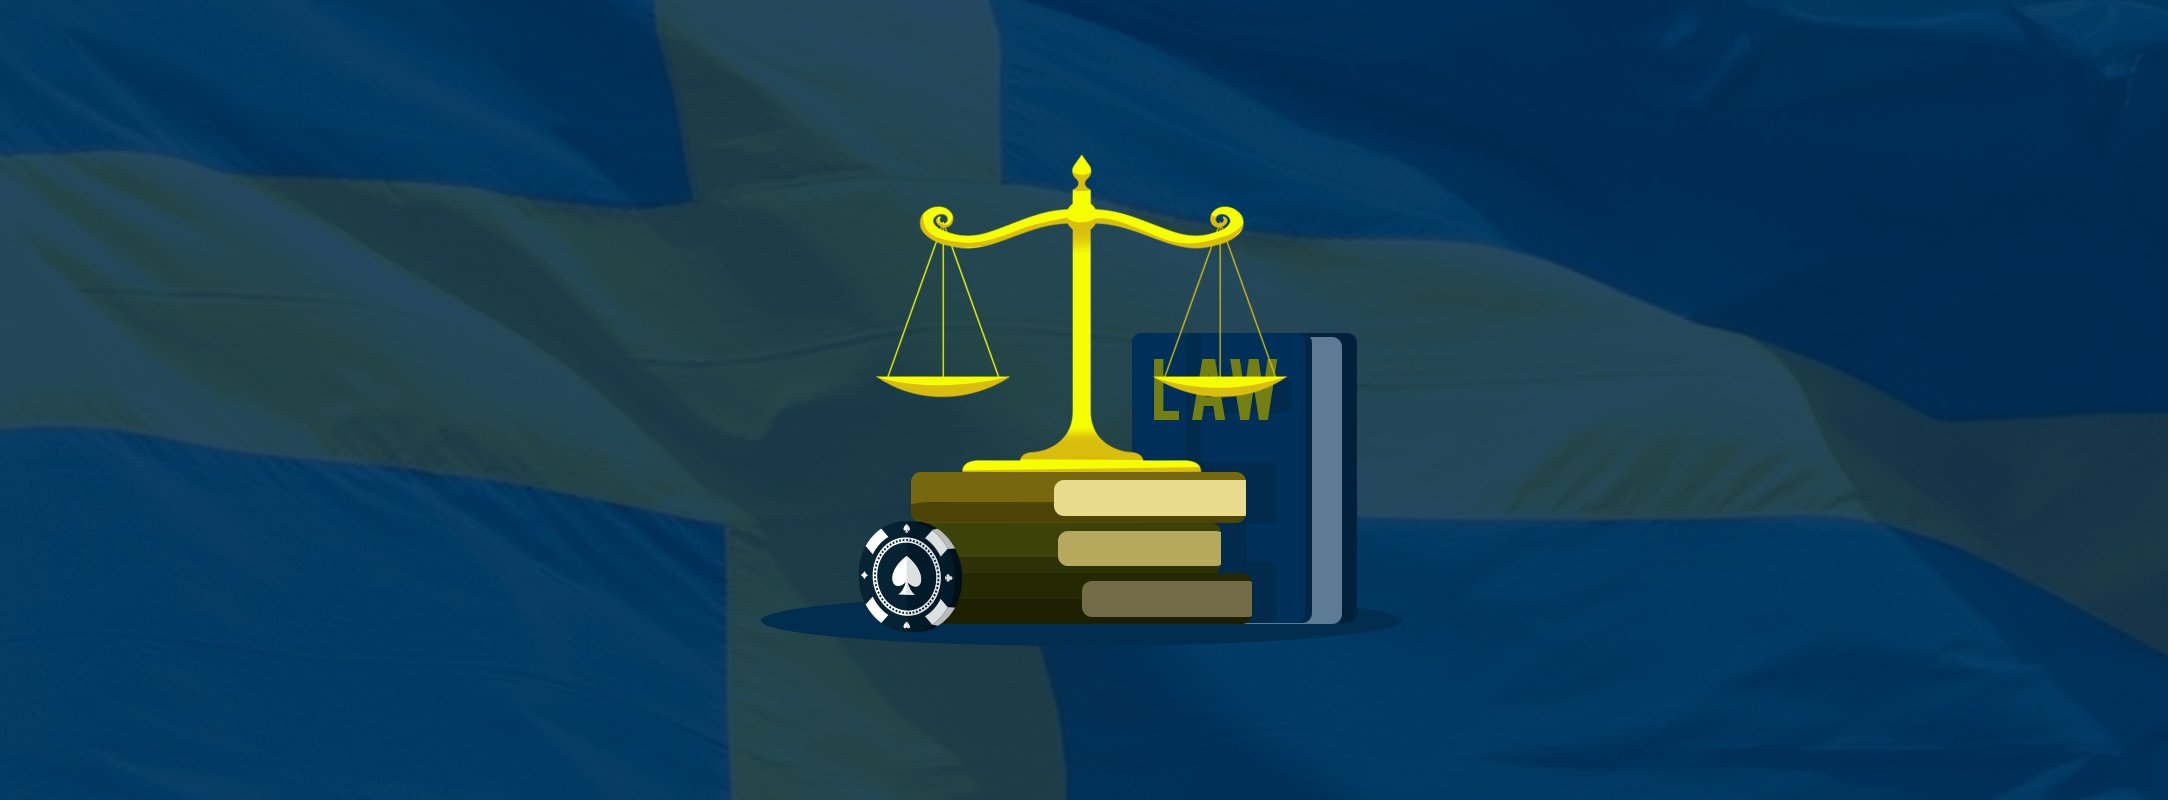 Operators Choosing To Appeal Penalties From Swedish Regulator